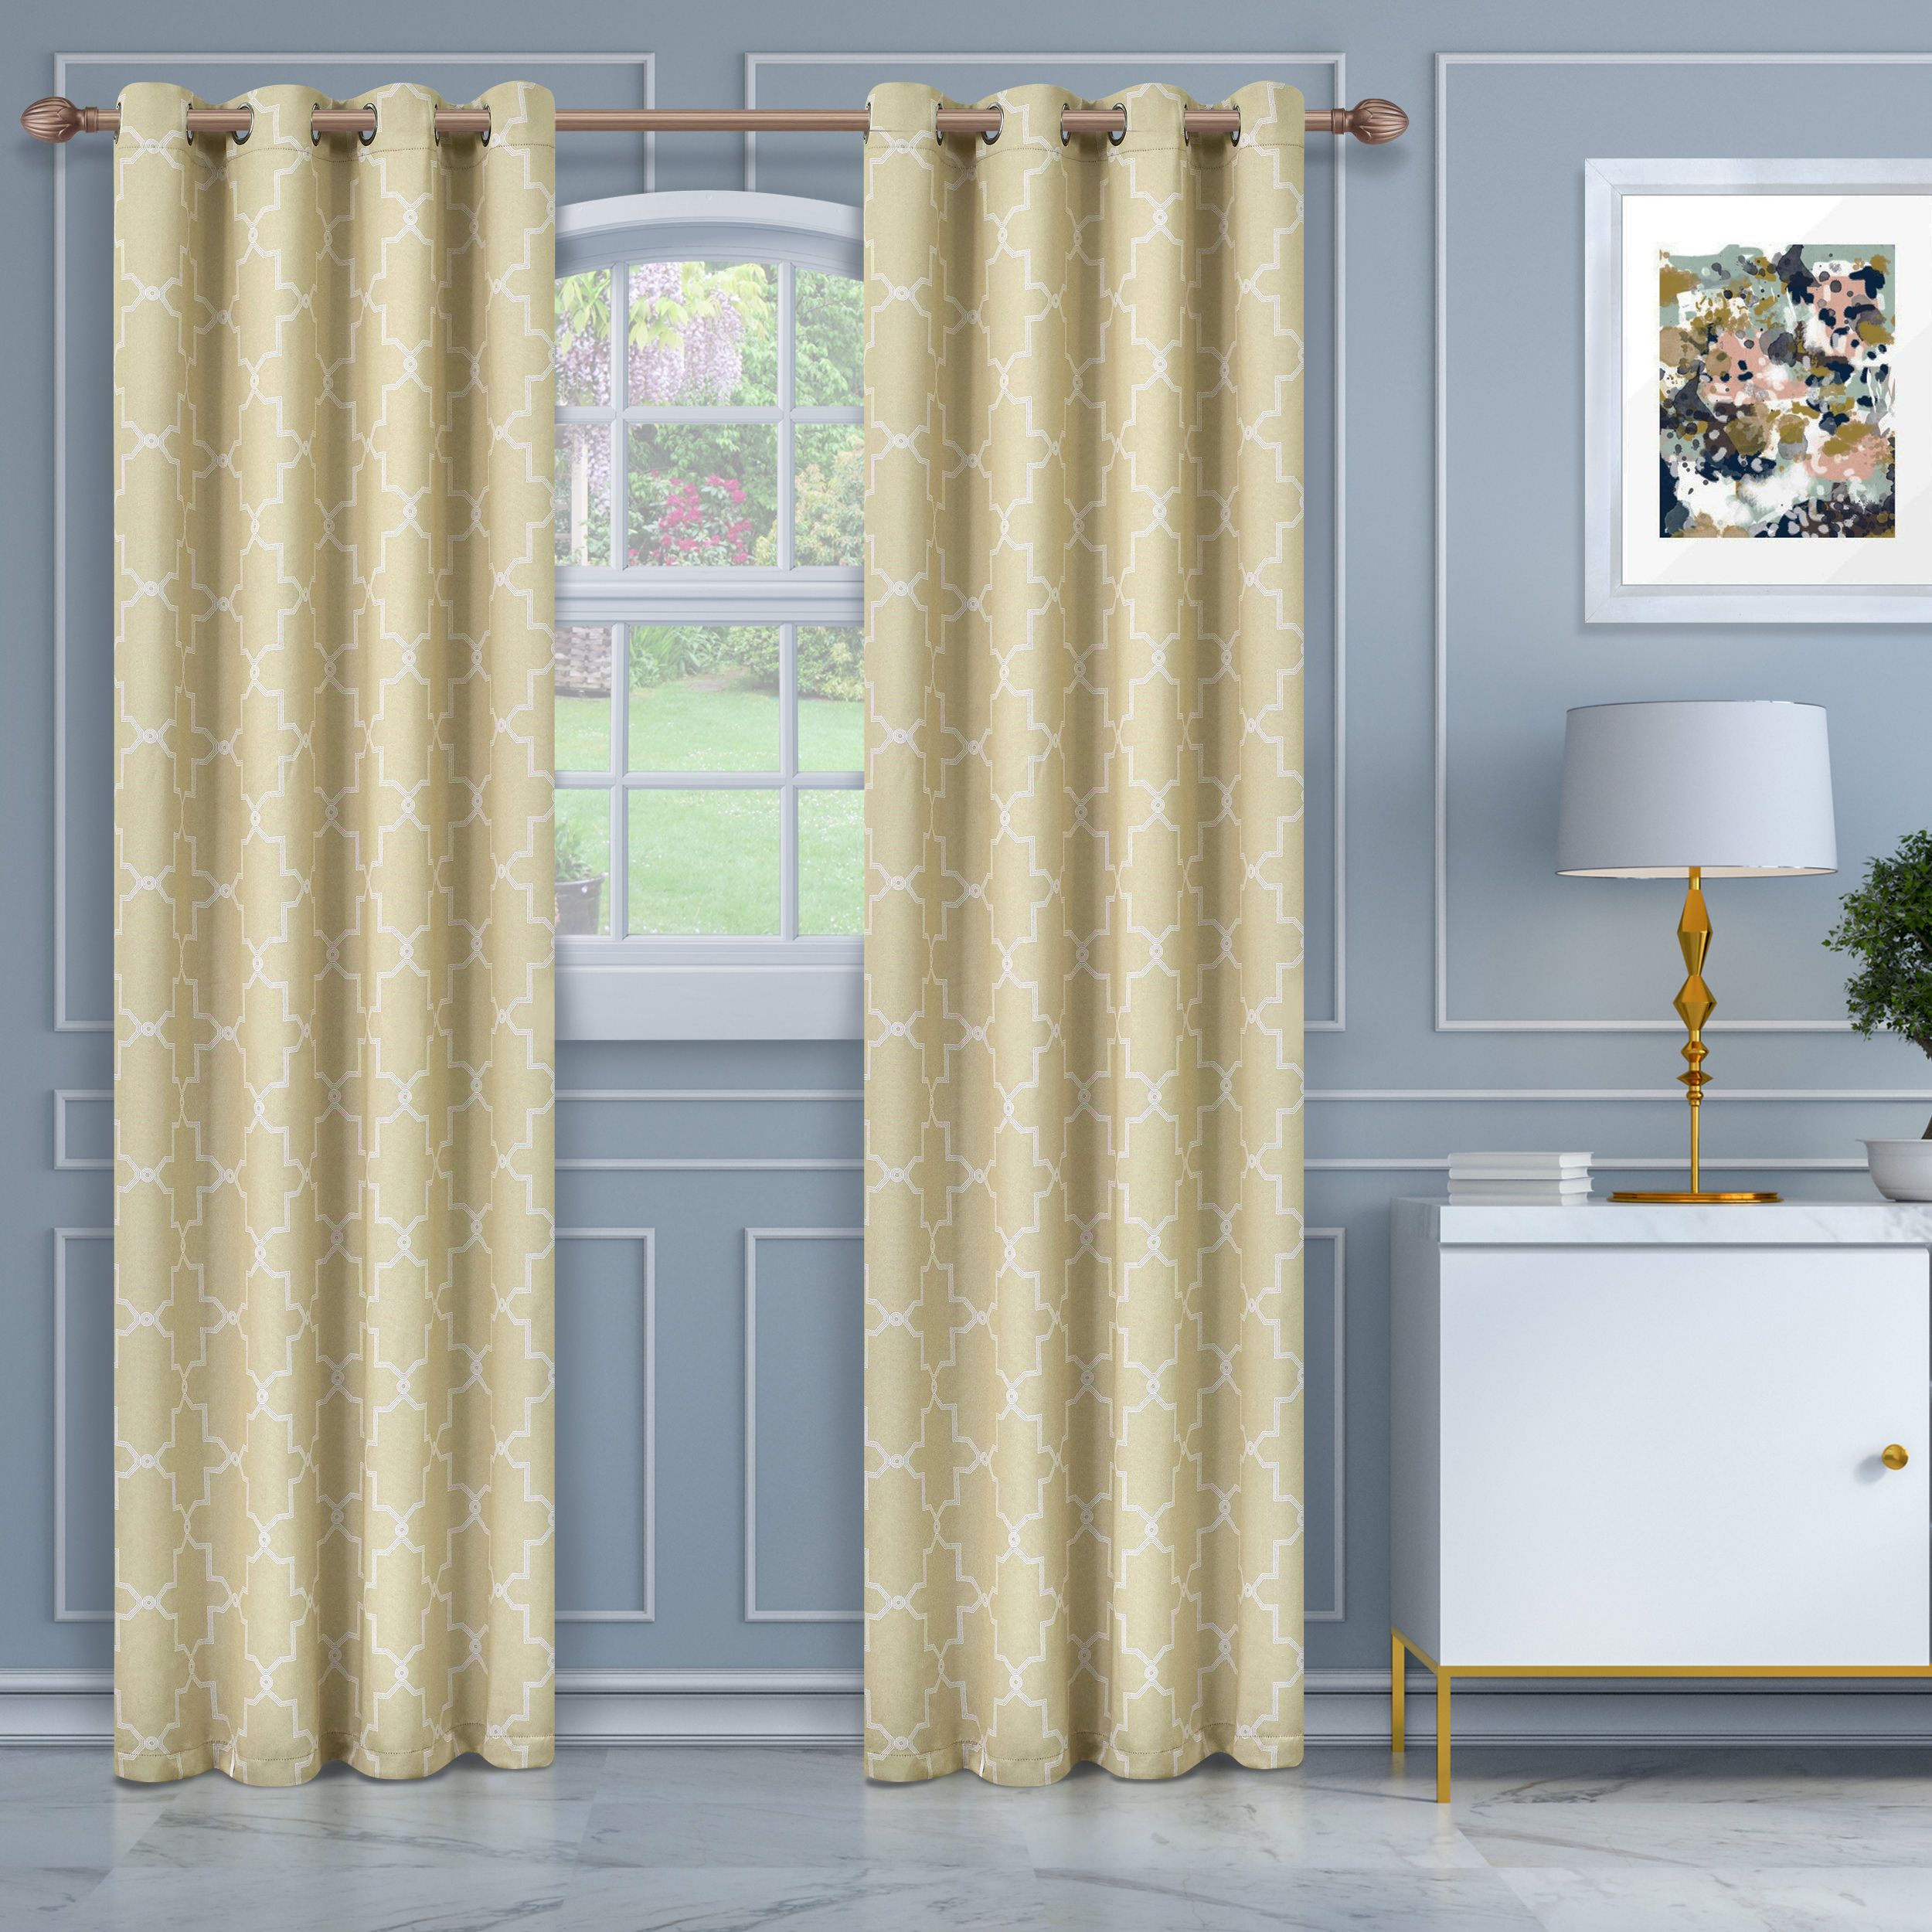 Superior Soft Quality Woven, Imperial Trellis Blackout Thermal Grommet Curtain Panel Pair With Superior Solid Insulated Thermal Blackout Grommet Curtain Panel Pairs (View 19 of 30)